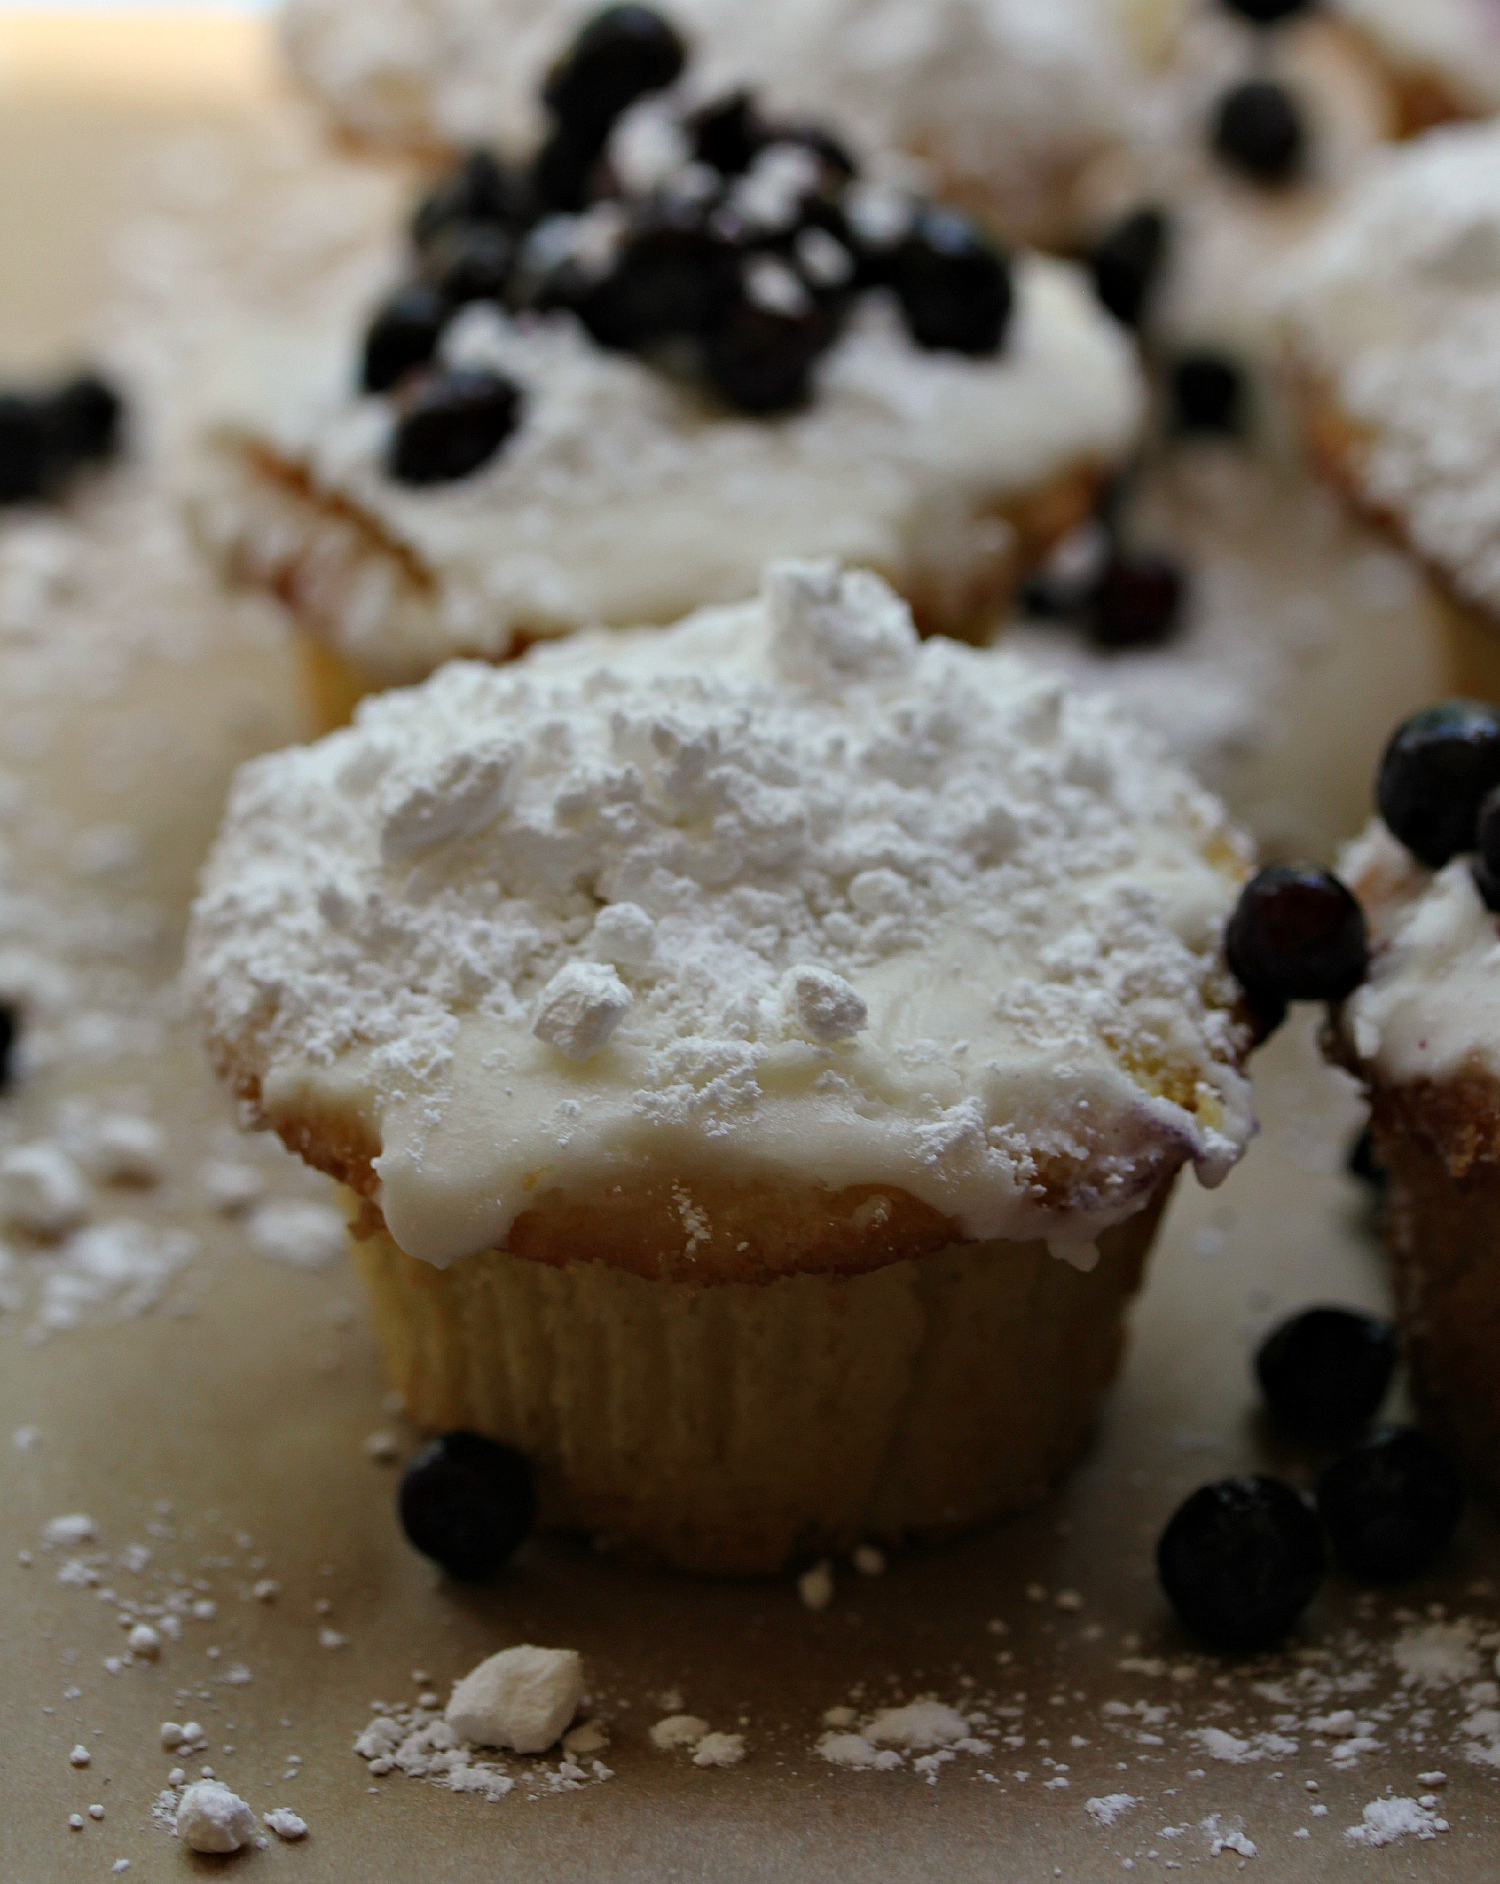 Lemon and Blueberry Cupcakes by Dena T Bray